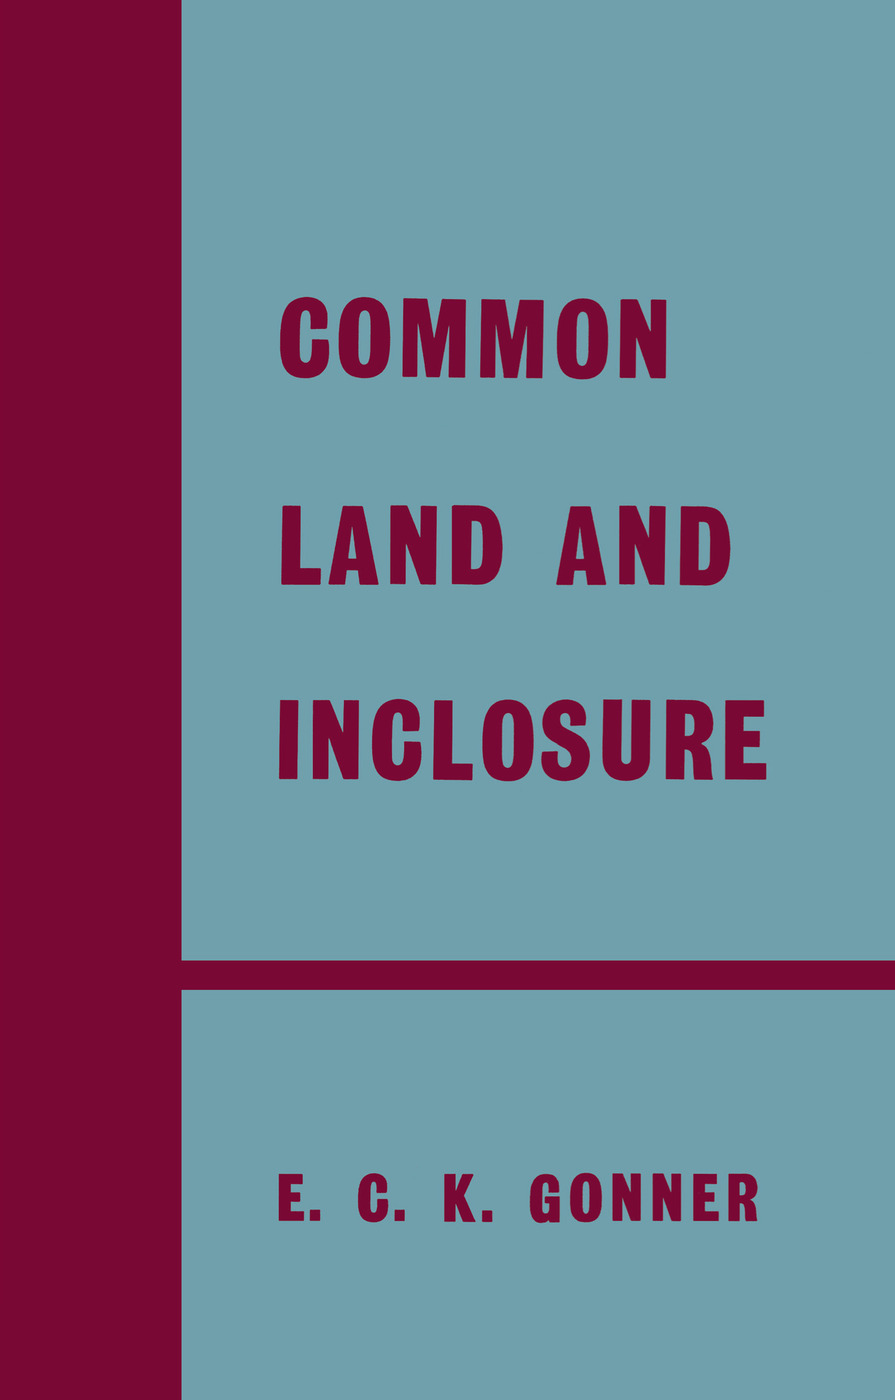 Common Land and Enclosure